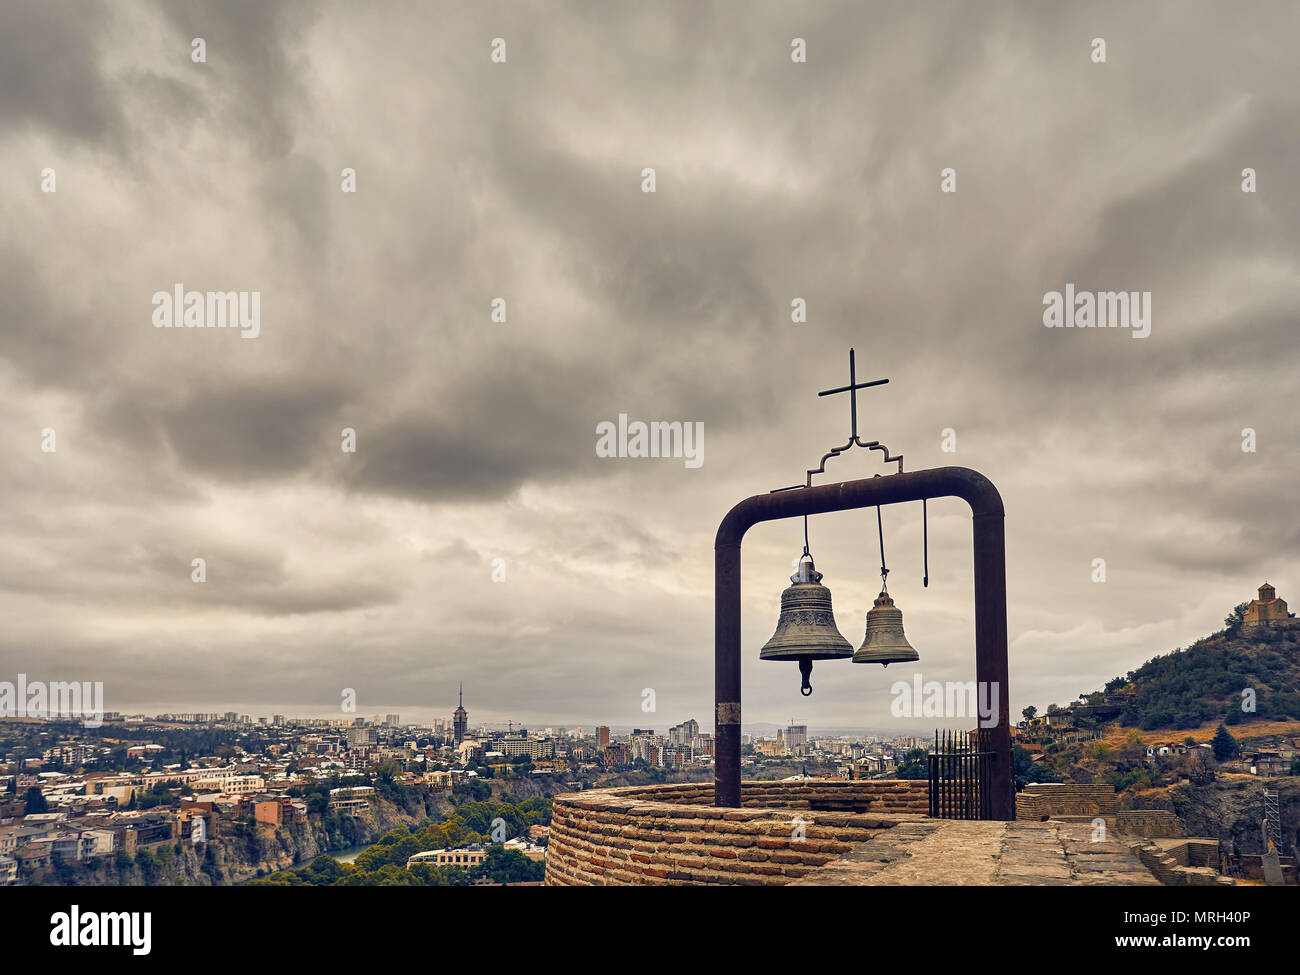 Old medieval castle Narikala with big bells on the wall at overcast cloudy sky in Tbilisi, Georgia - Stock Image